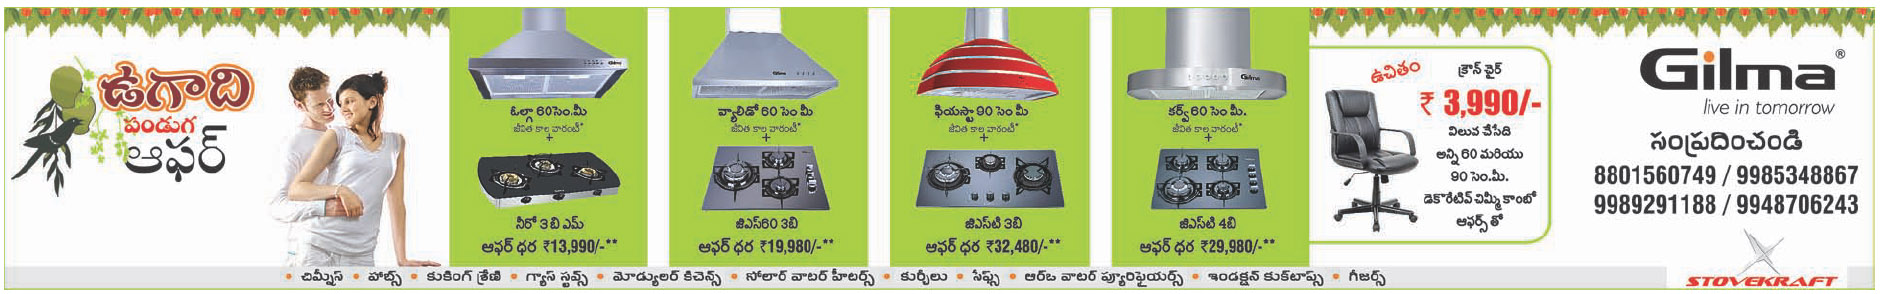 GILMA Presenting UGADI SPECIAL FESTIVAL OFFERS On All